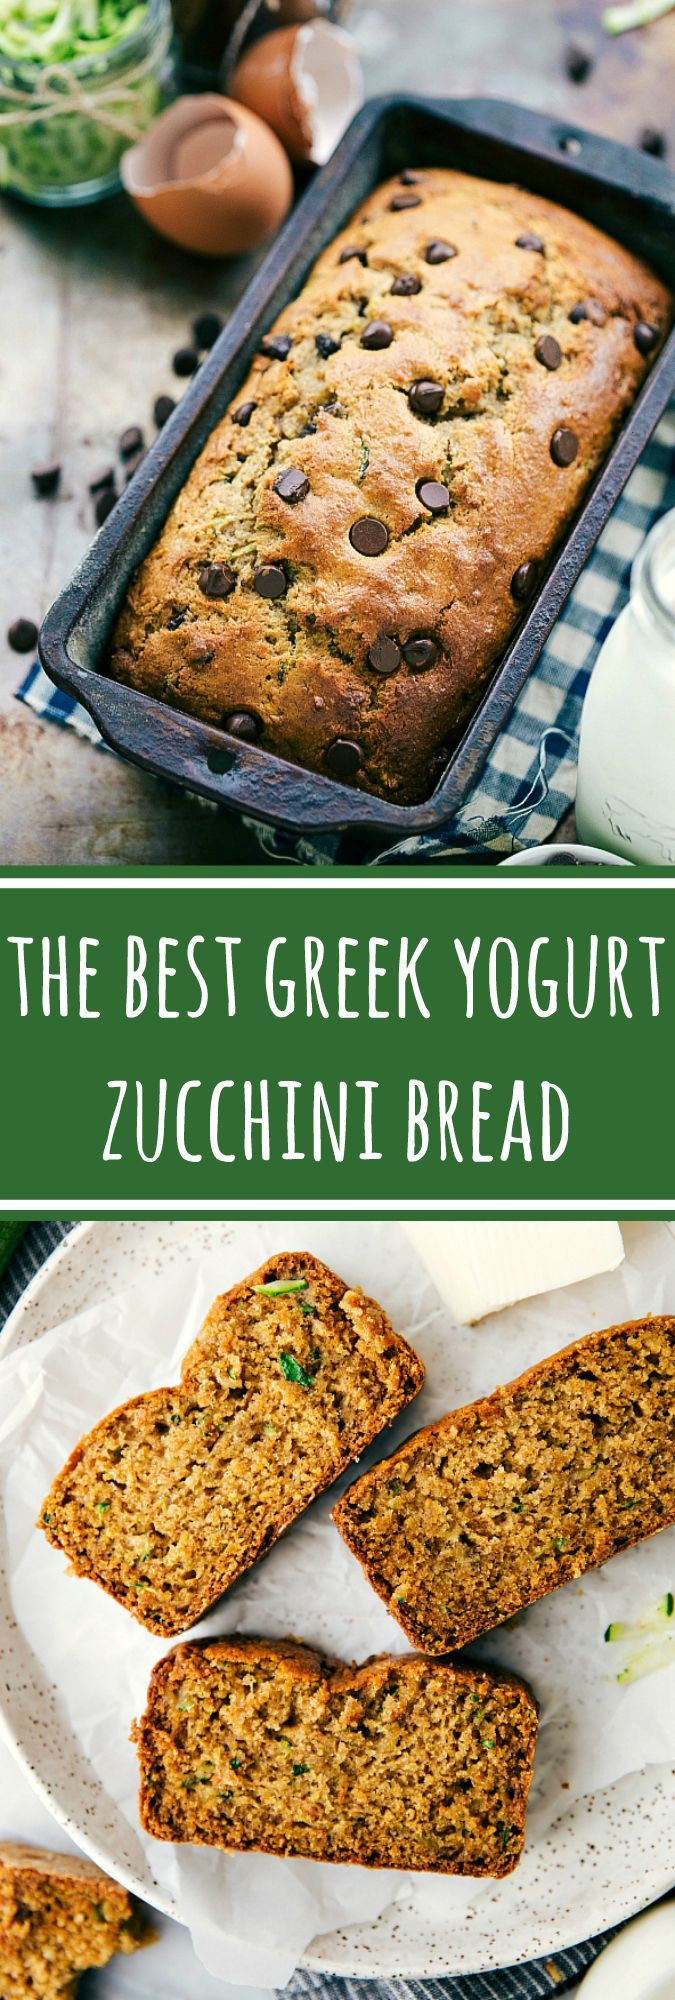 With or without chocolate chips, this Greek yogurt zucchini bread is the BEST! Rave reviews from many!